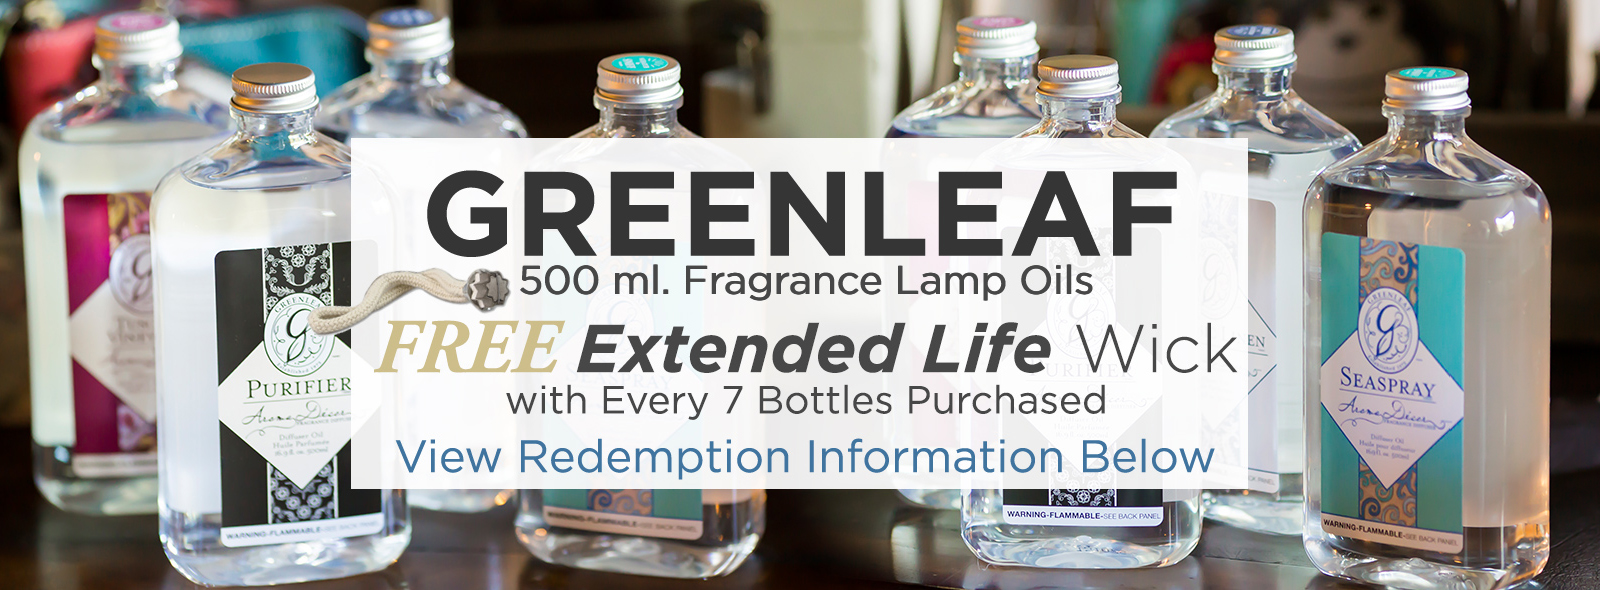 Greenleaf Diffusers & Oils